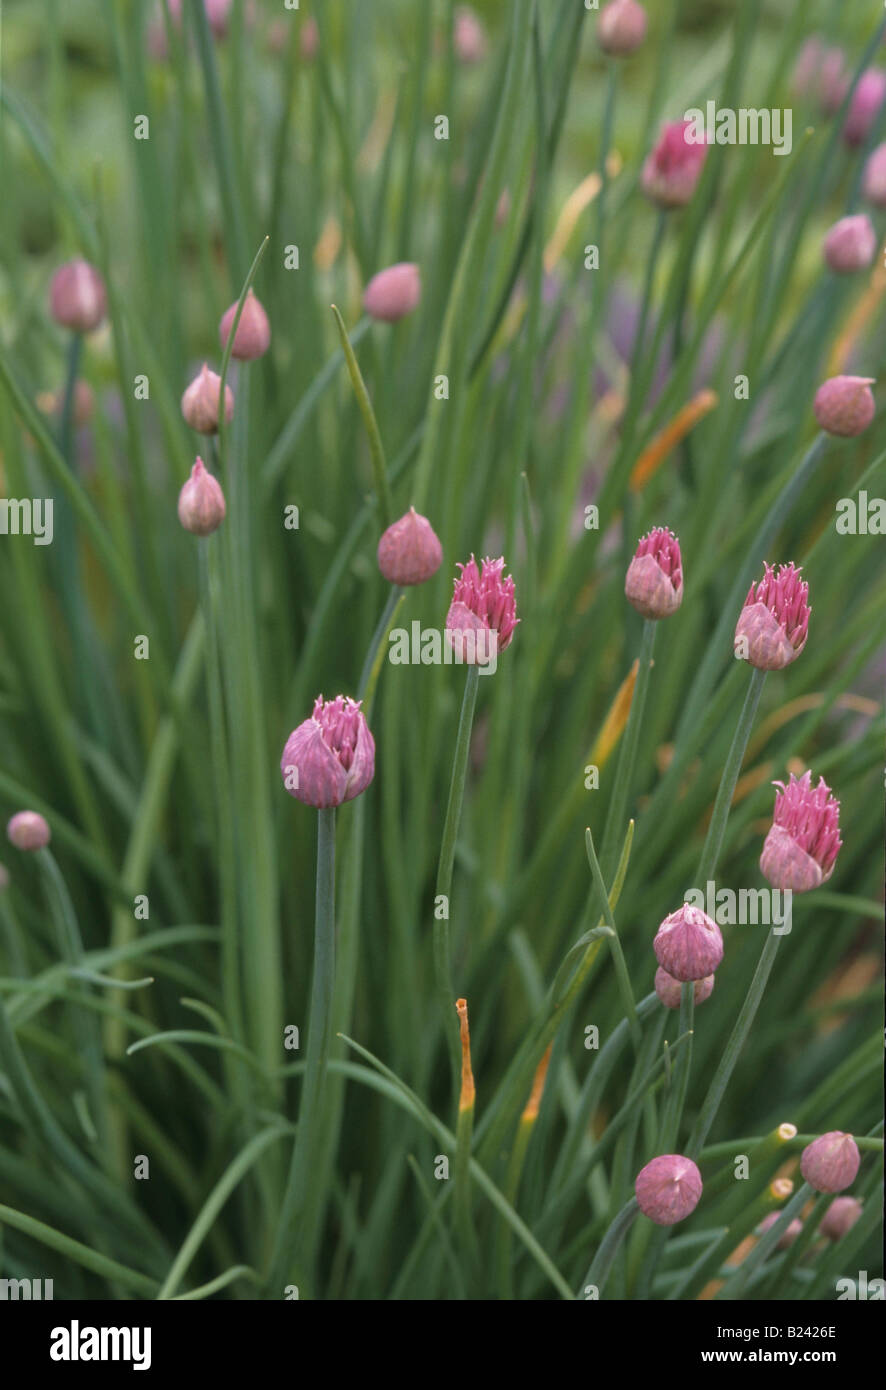 CHIVES PERENNIAL PLANT RELATED TO ONION - Stock Image